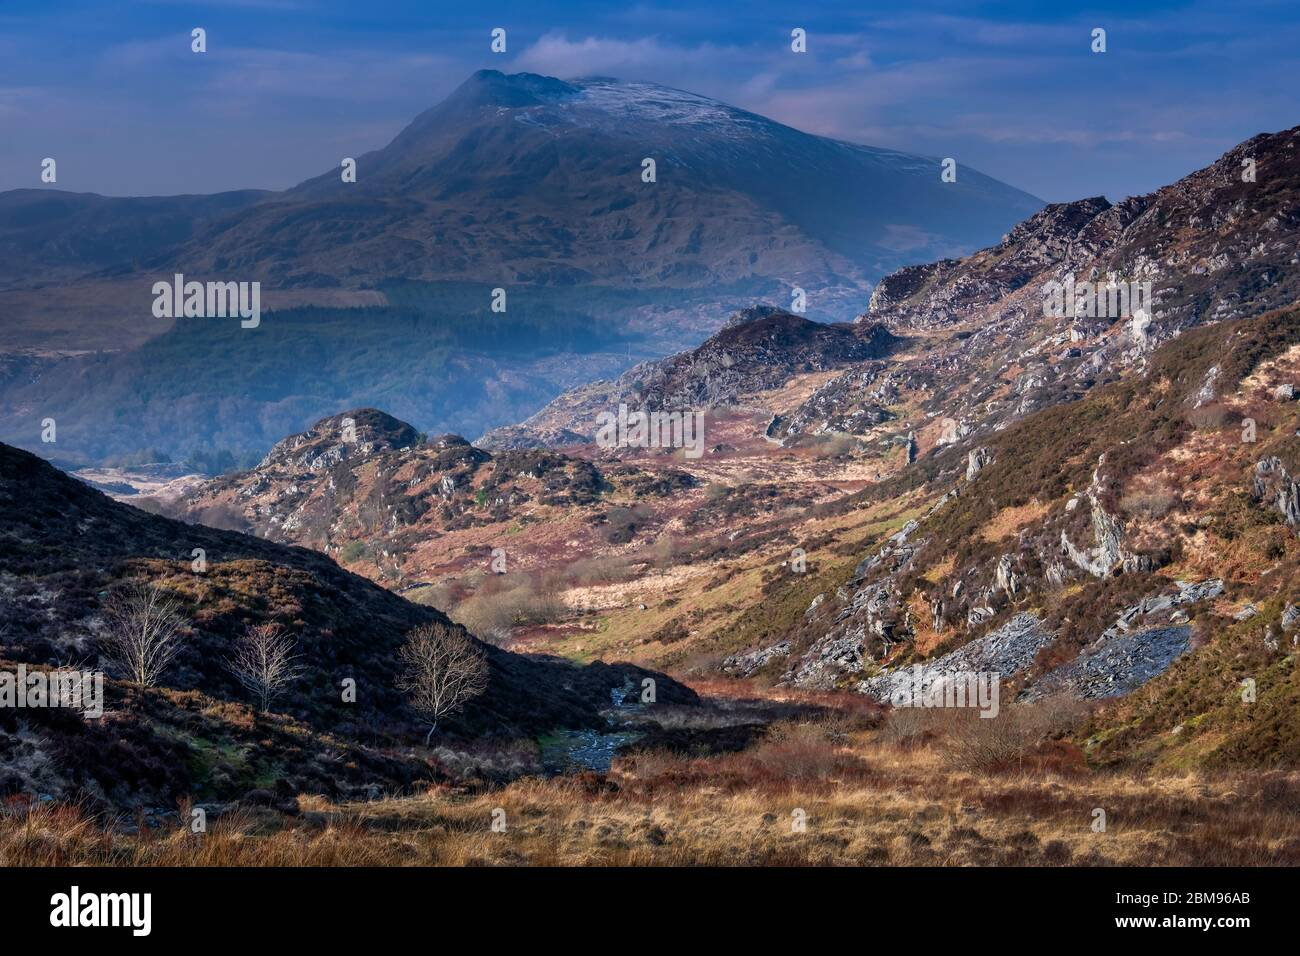 Moel Siabod from Creigiau Geuallt above Capel Curig, Snowdonia National Park, North Wales, UK Stock Photo